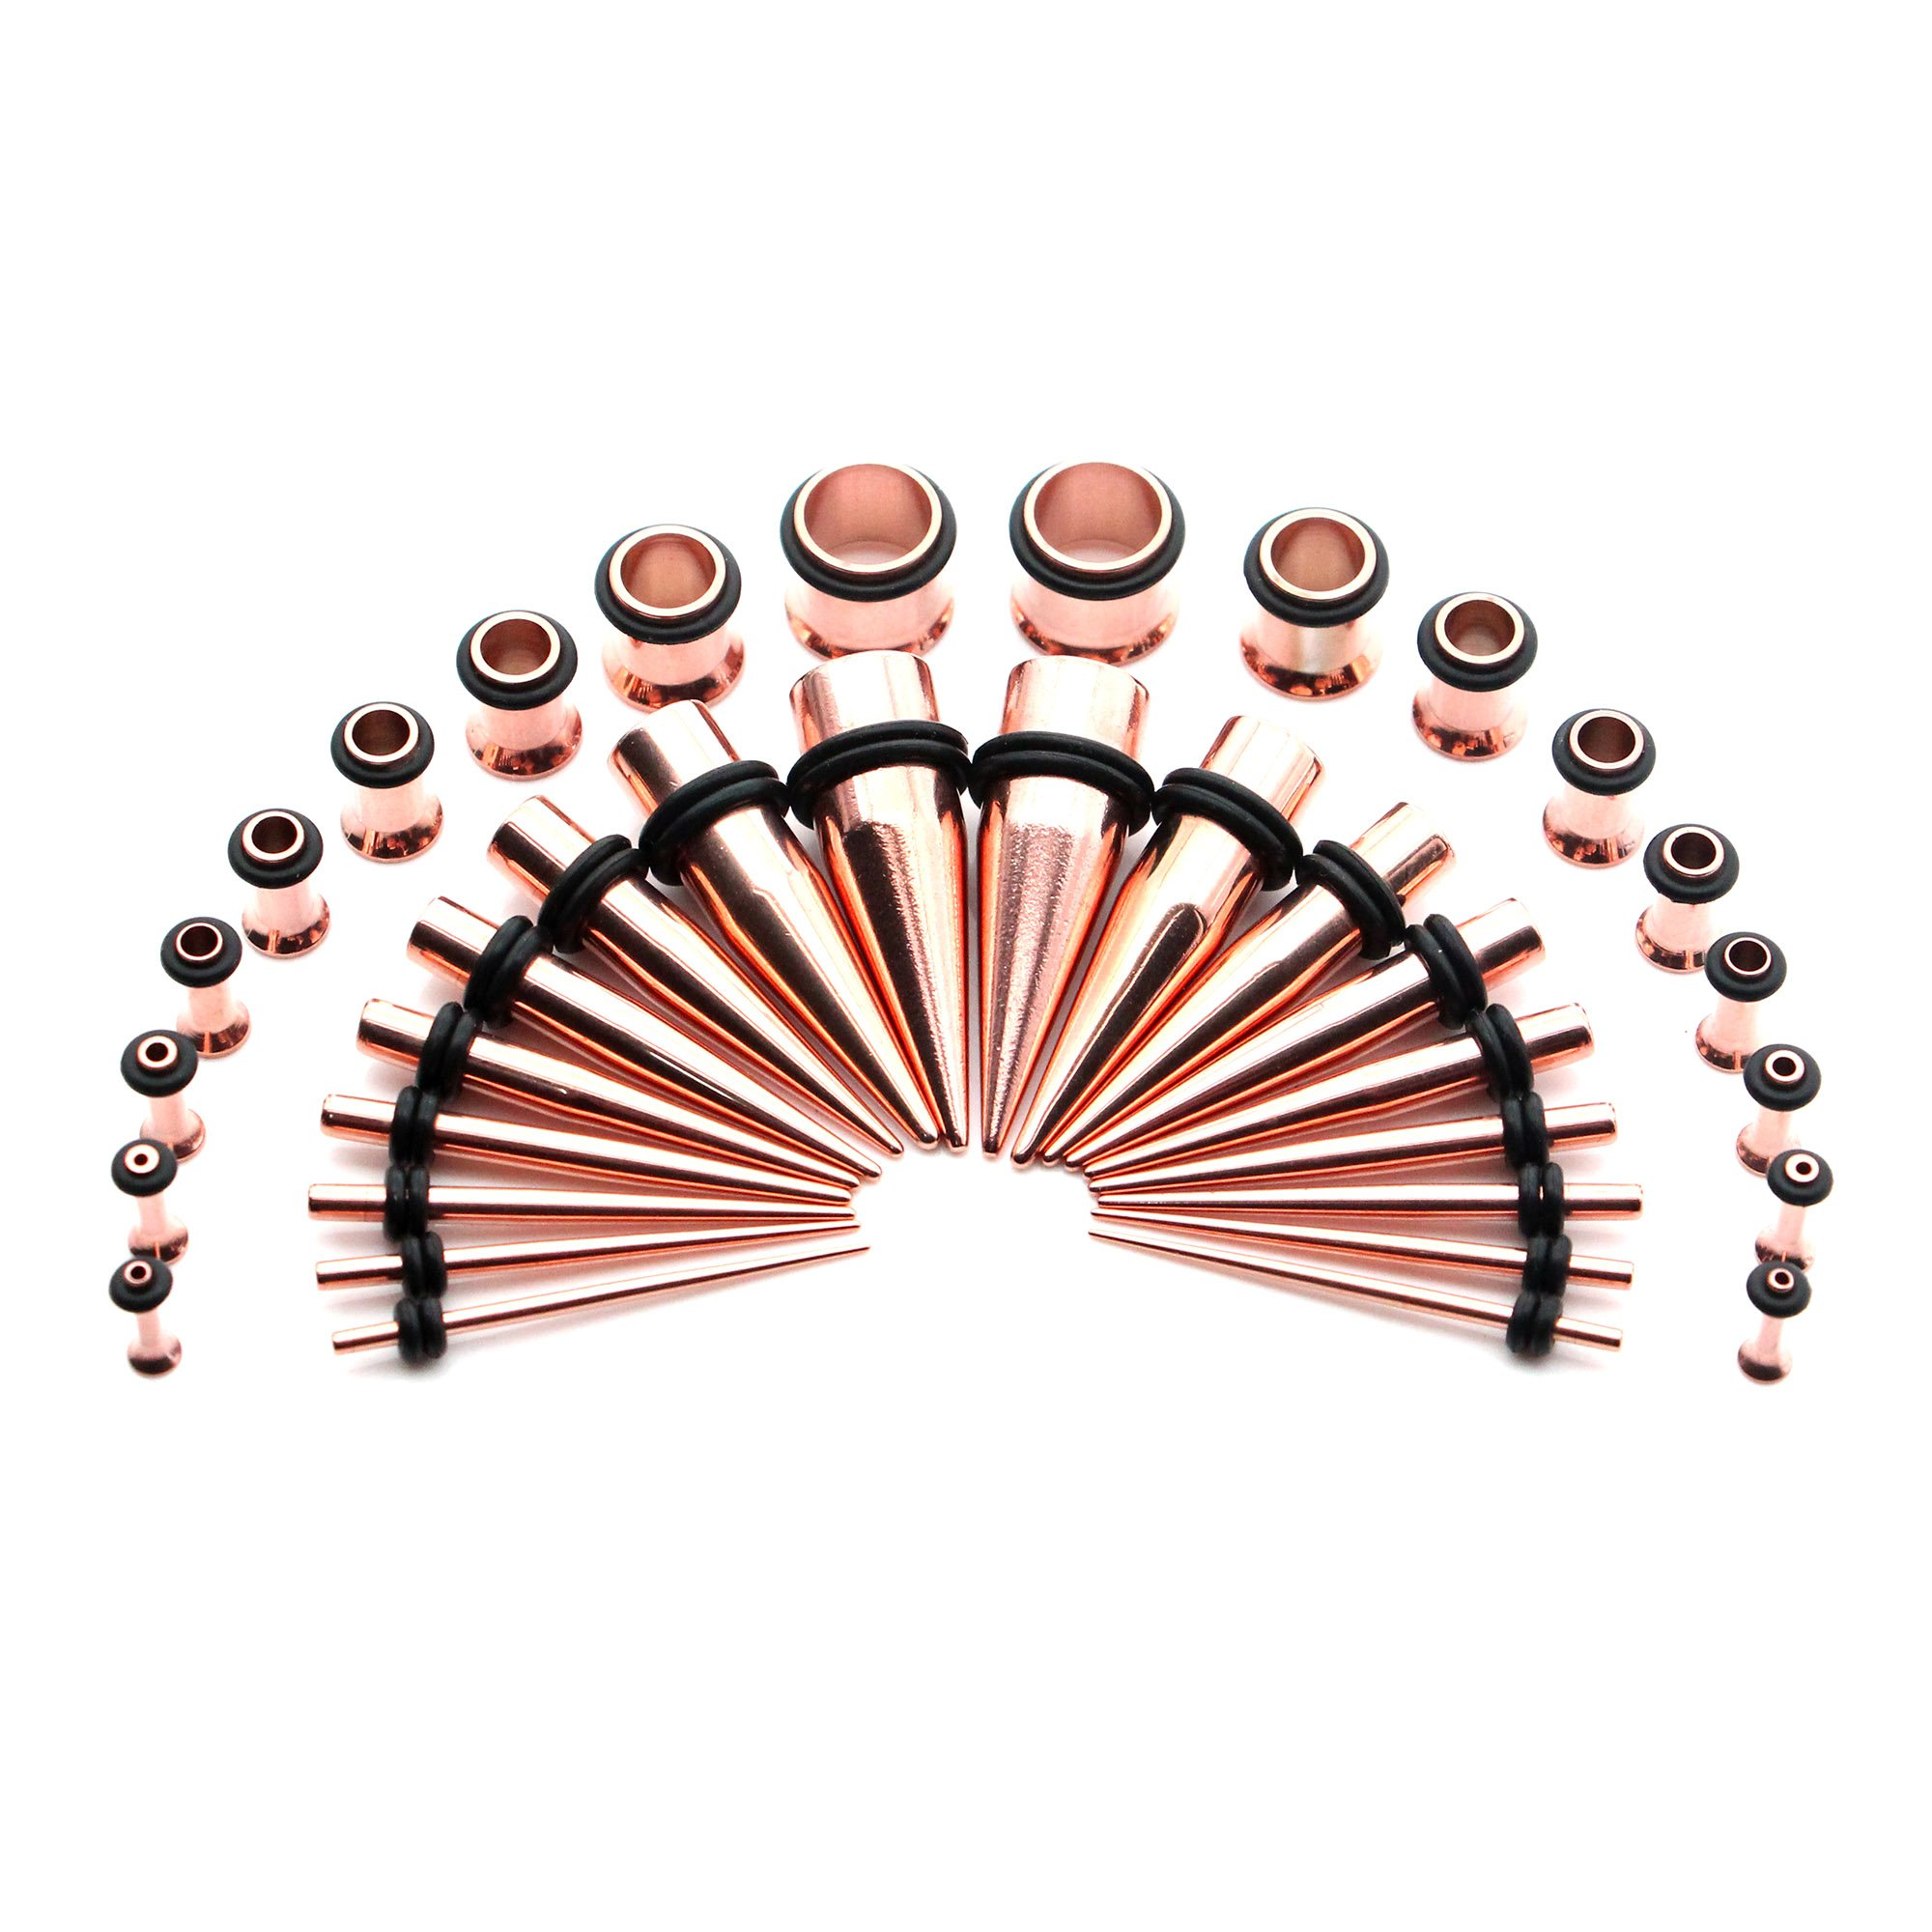 Awinrel 36 Pieces Ear Gauges Stretching Kit Taper Stainless Steel Single Flare Tunnel Plugs Eyelet 14G-00G and 36 pcs O-Ring Extra Set Rose Gold by Awinrel